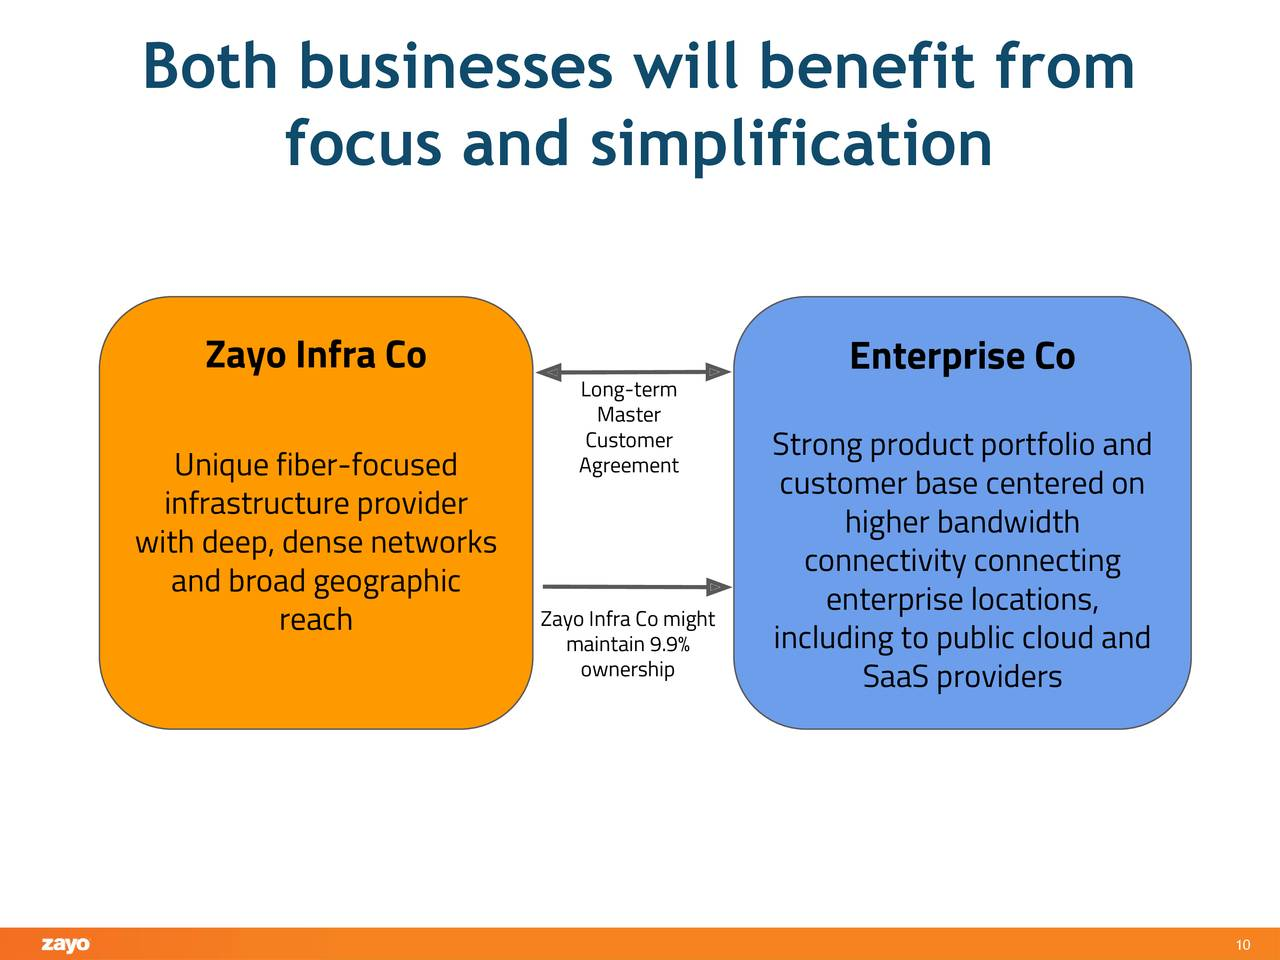 Zayo Group 2019 Q1 - Results - Earnings Call Slides - Zayo Group